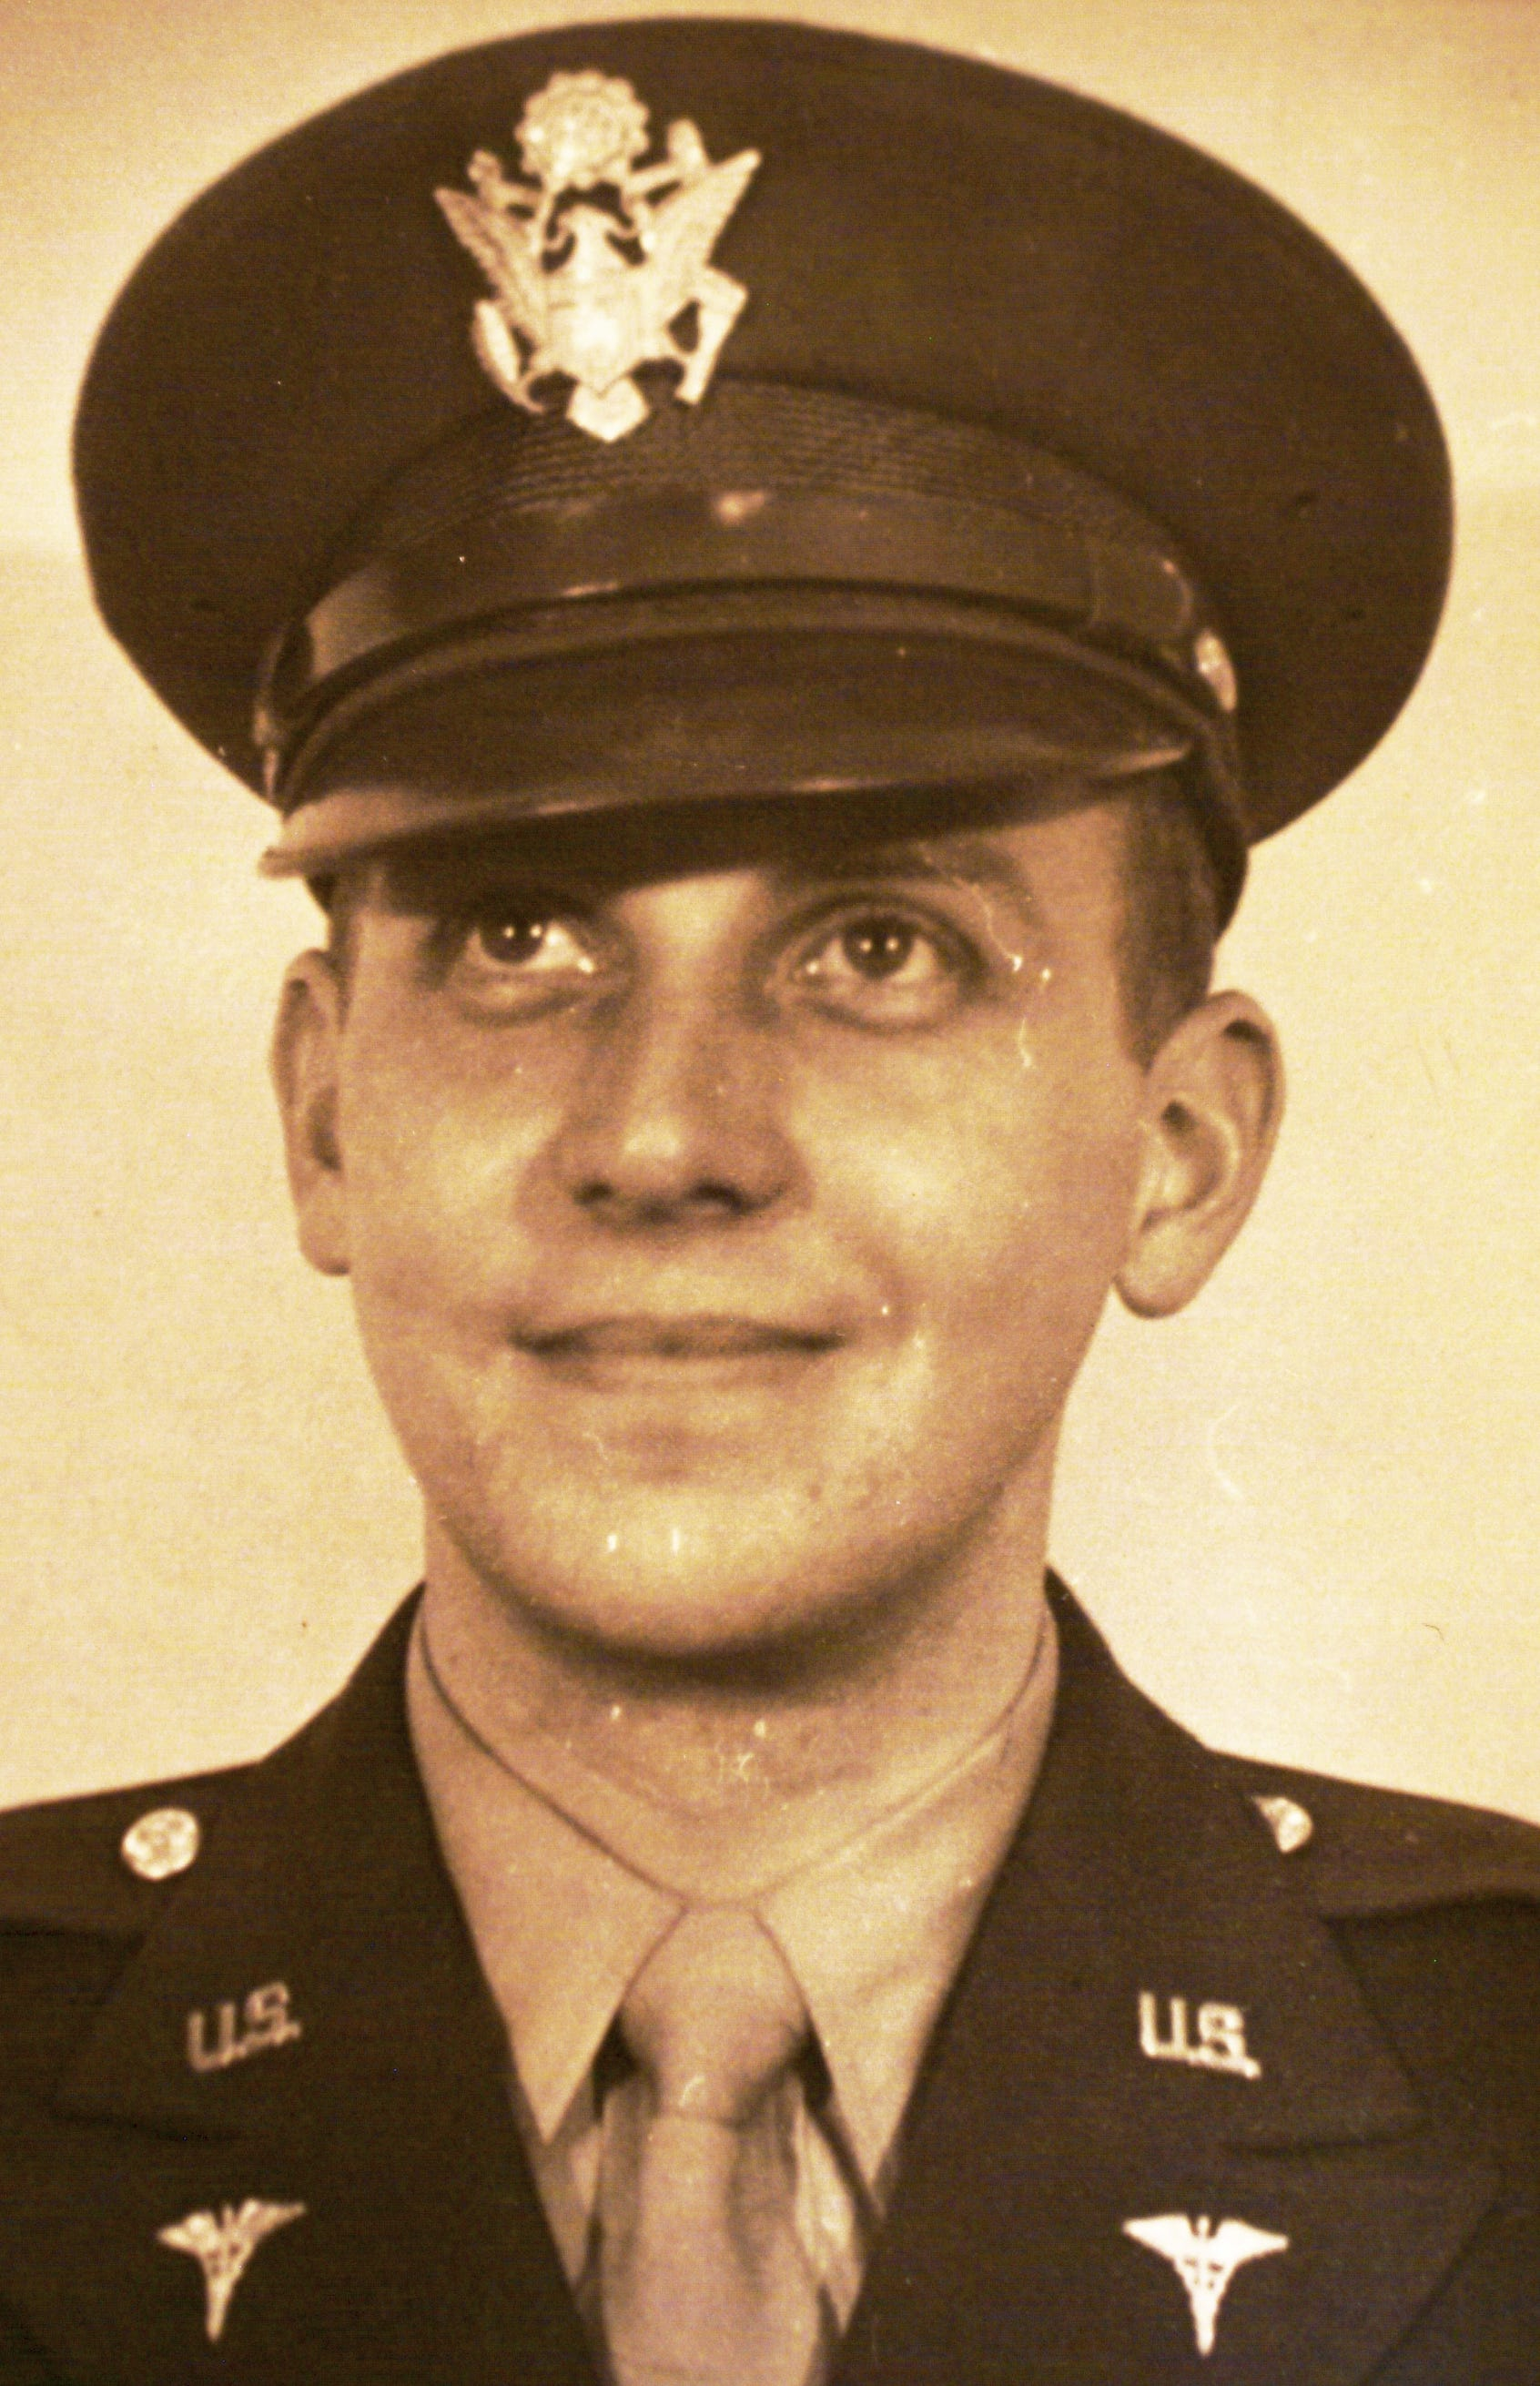 Eugene Nordby volunteered for the U.S. Army shortly after earning his medical degree at the University of Wisconsin-Madison in 1943. He served in Okinawa and South Korea.